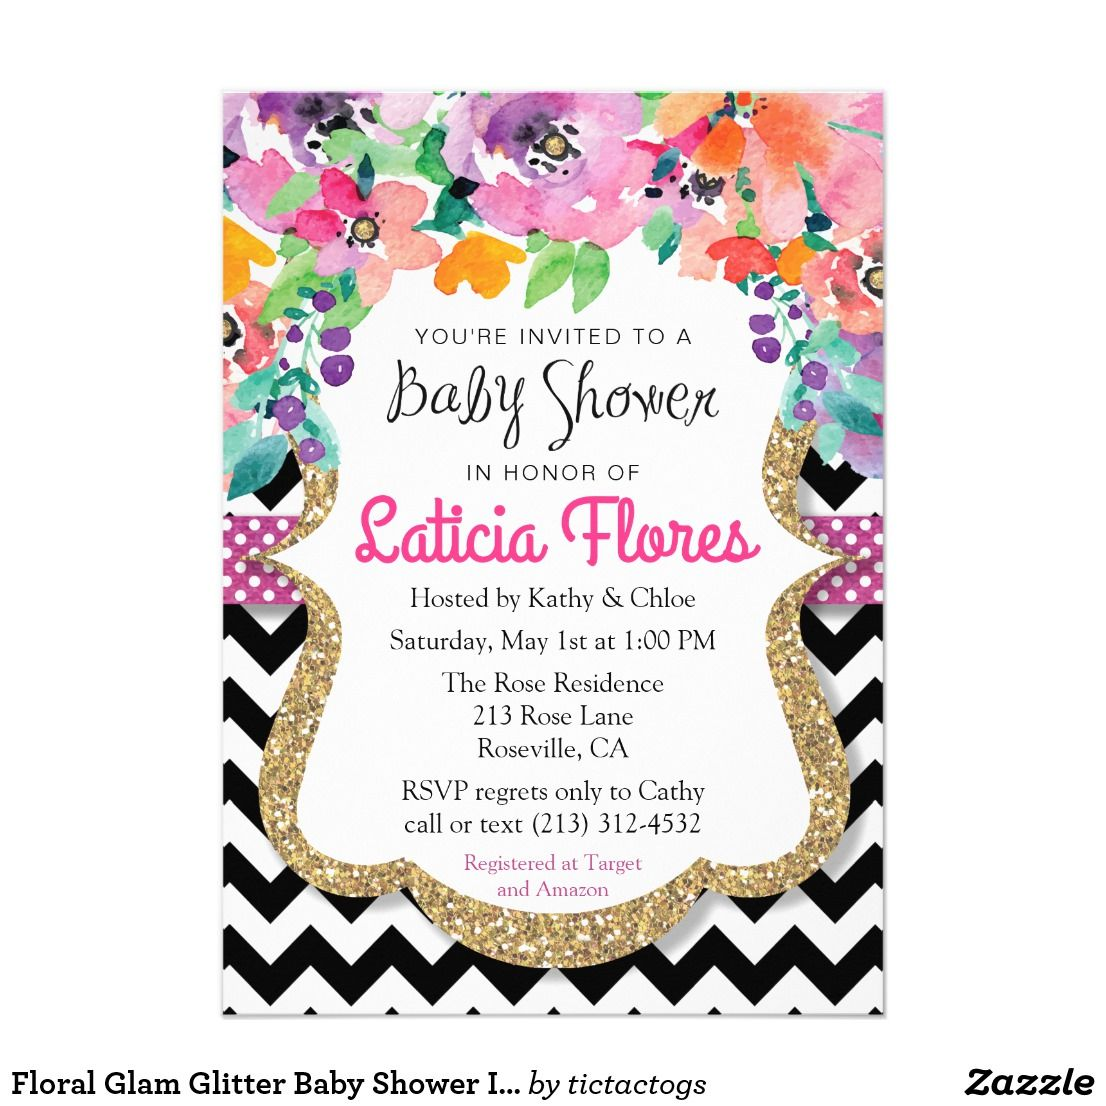 Floral Glam Glitter Baby Shower Invitation | Chic baby and Shower ...